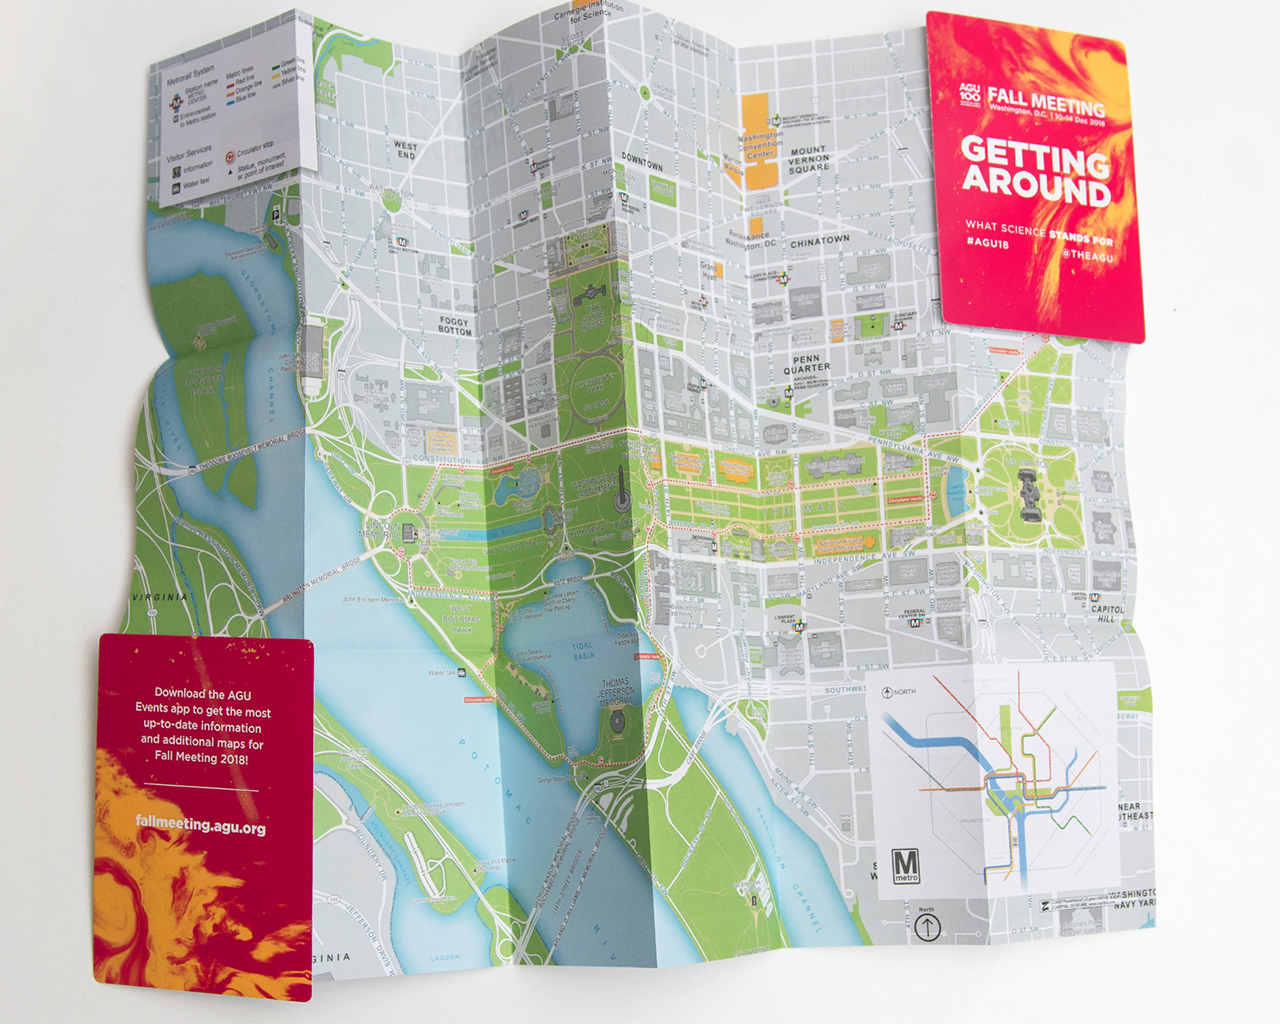 Open pocket map detailing the surrounding location in DC of AGU Fall Meeting 2019